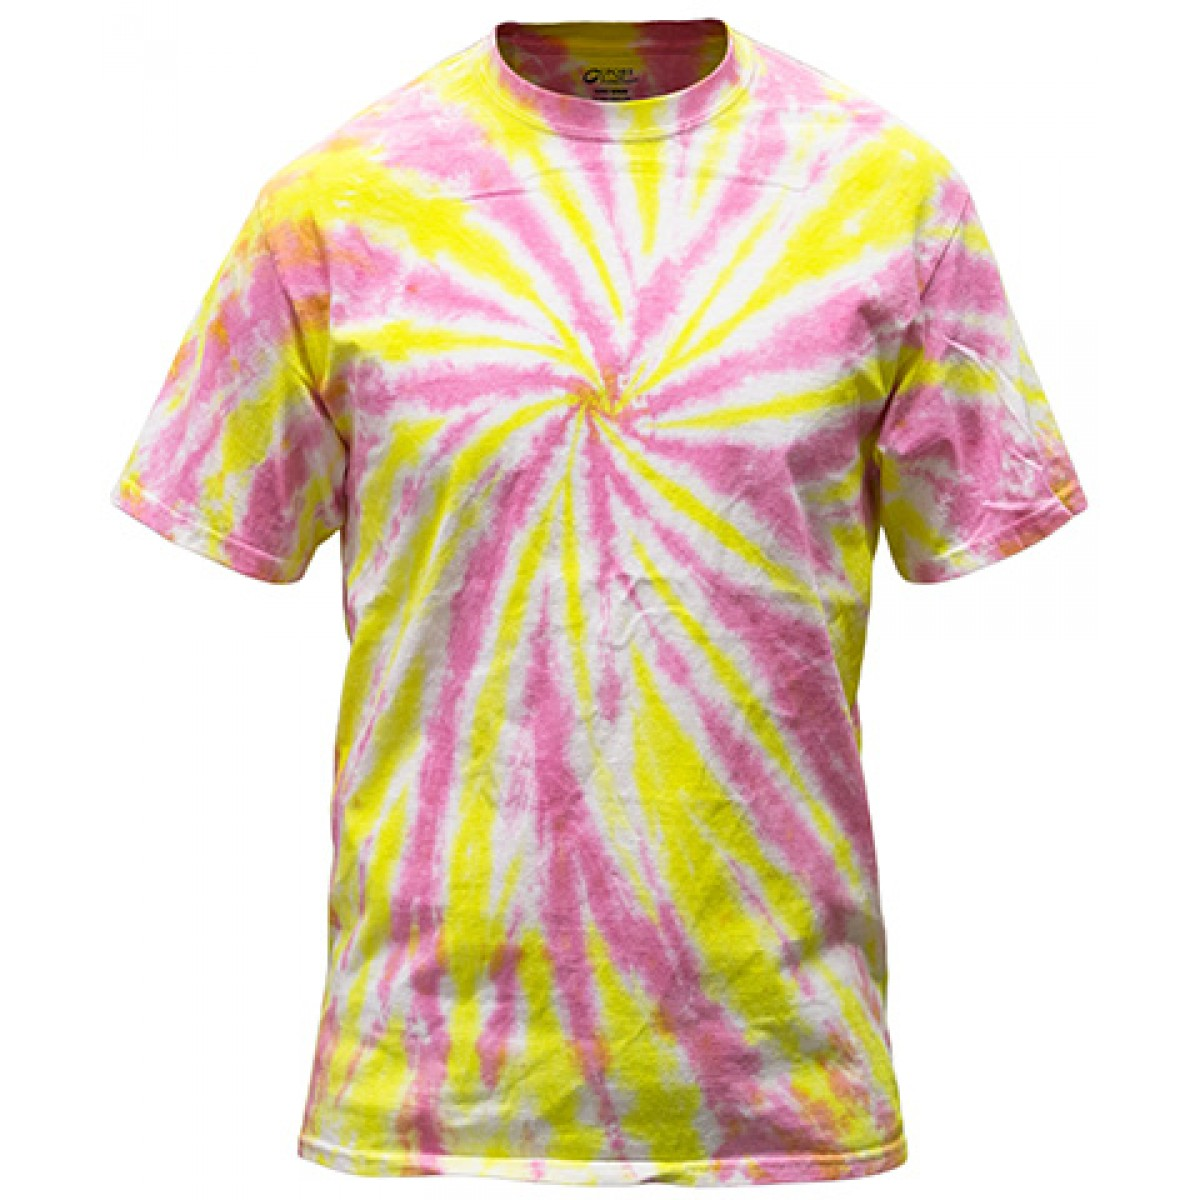 Multi-Color Tie-Dye Tee -Pink/Yellow-YM